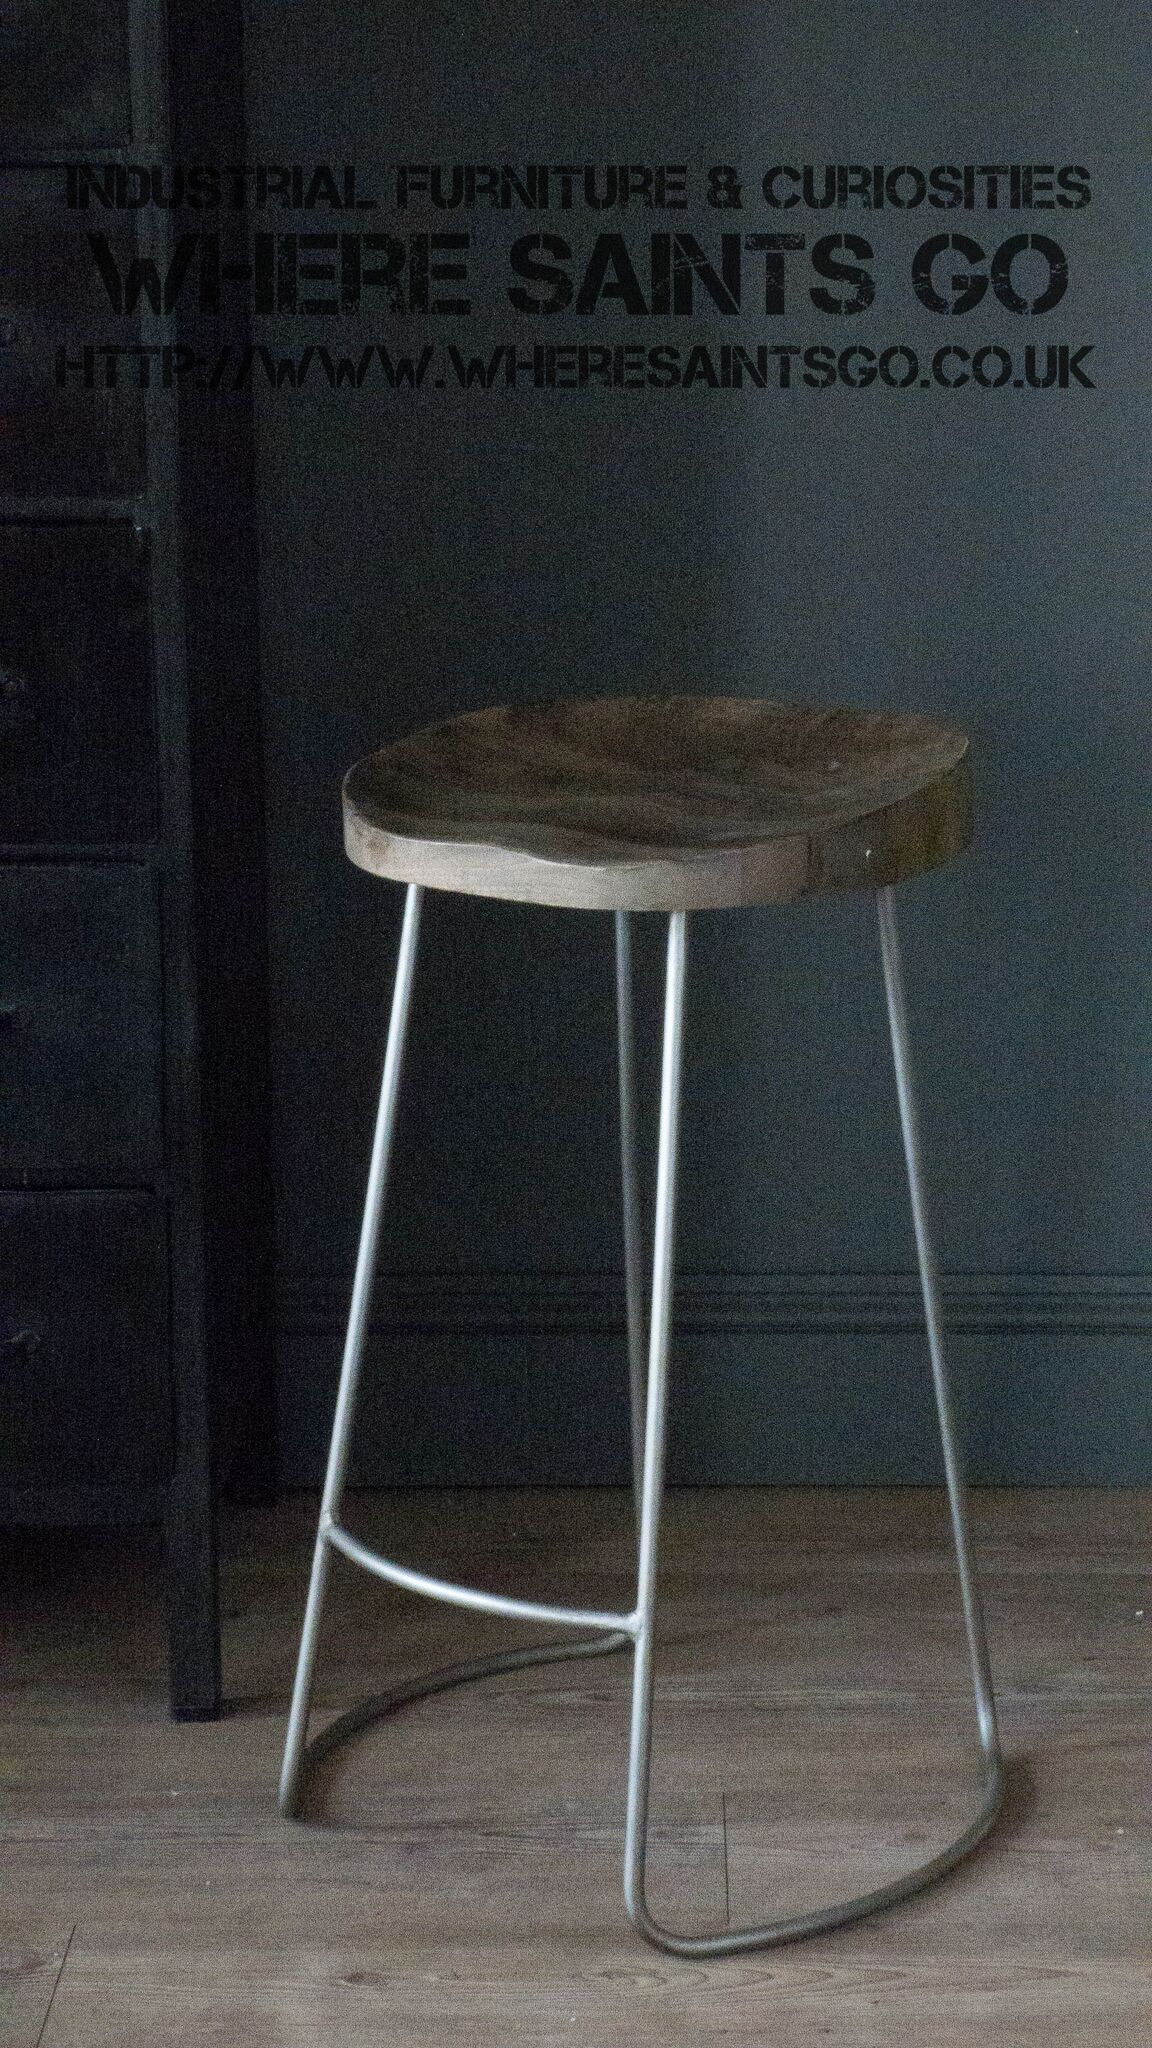 An Industrial Chic Stool With A Comfortable Wooden Seat And